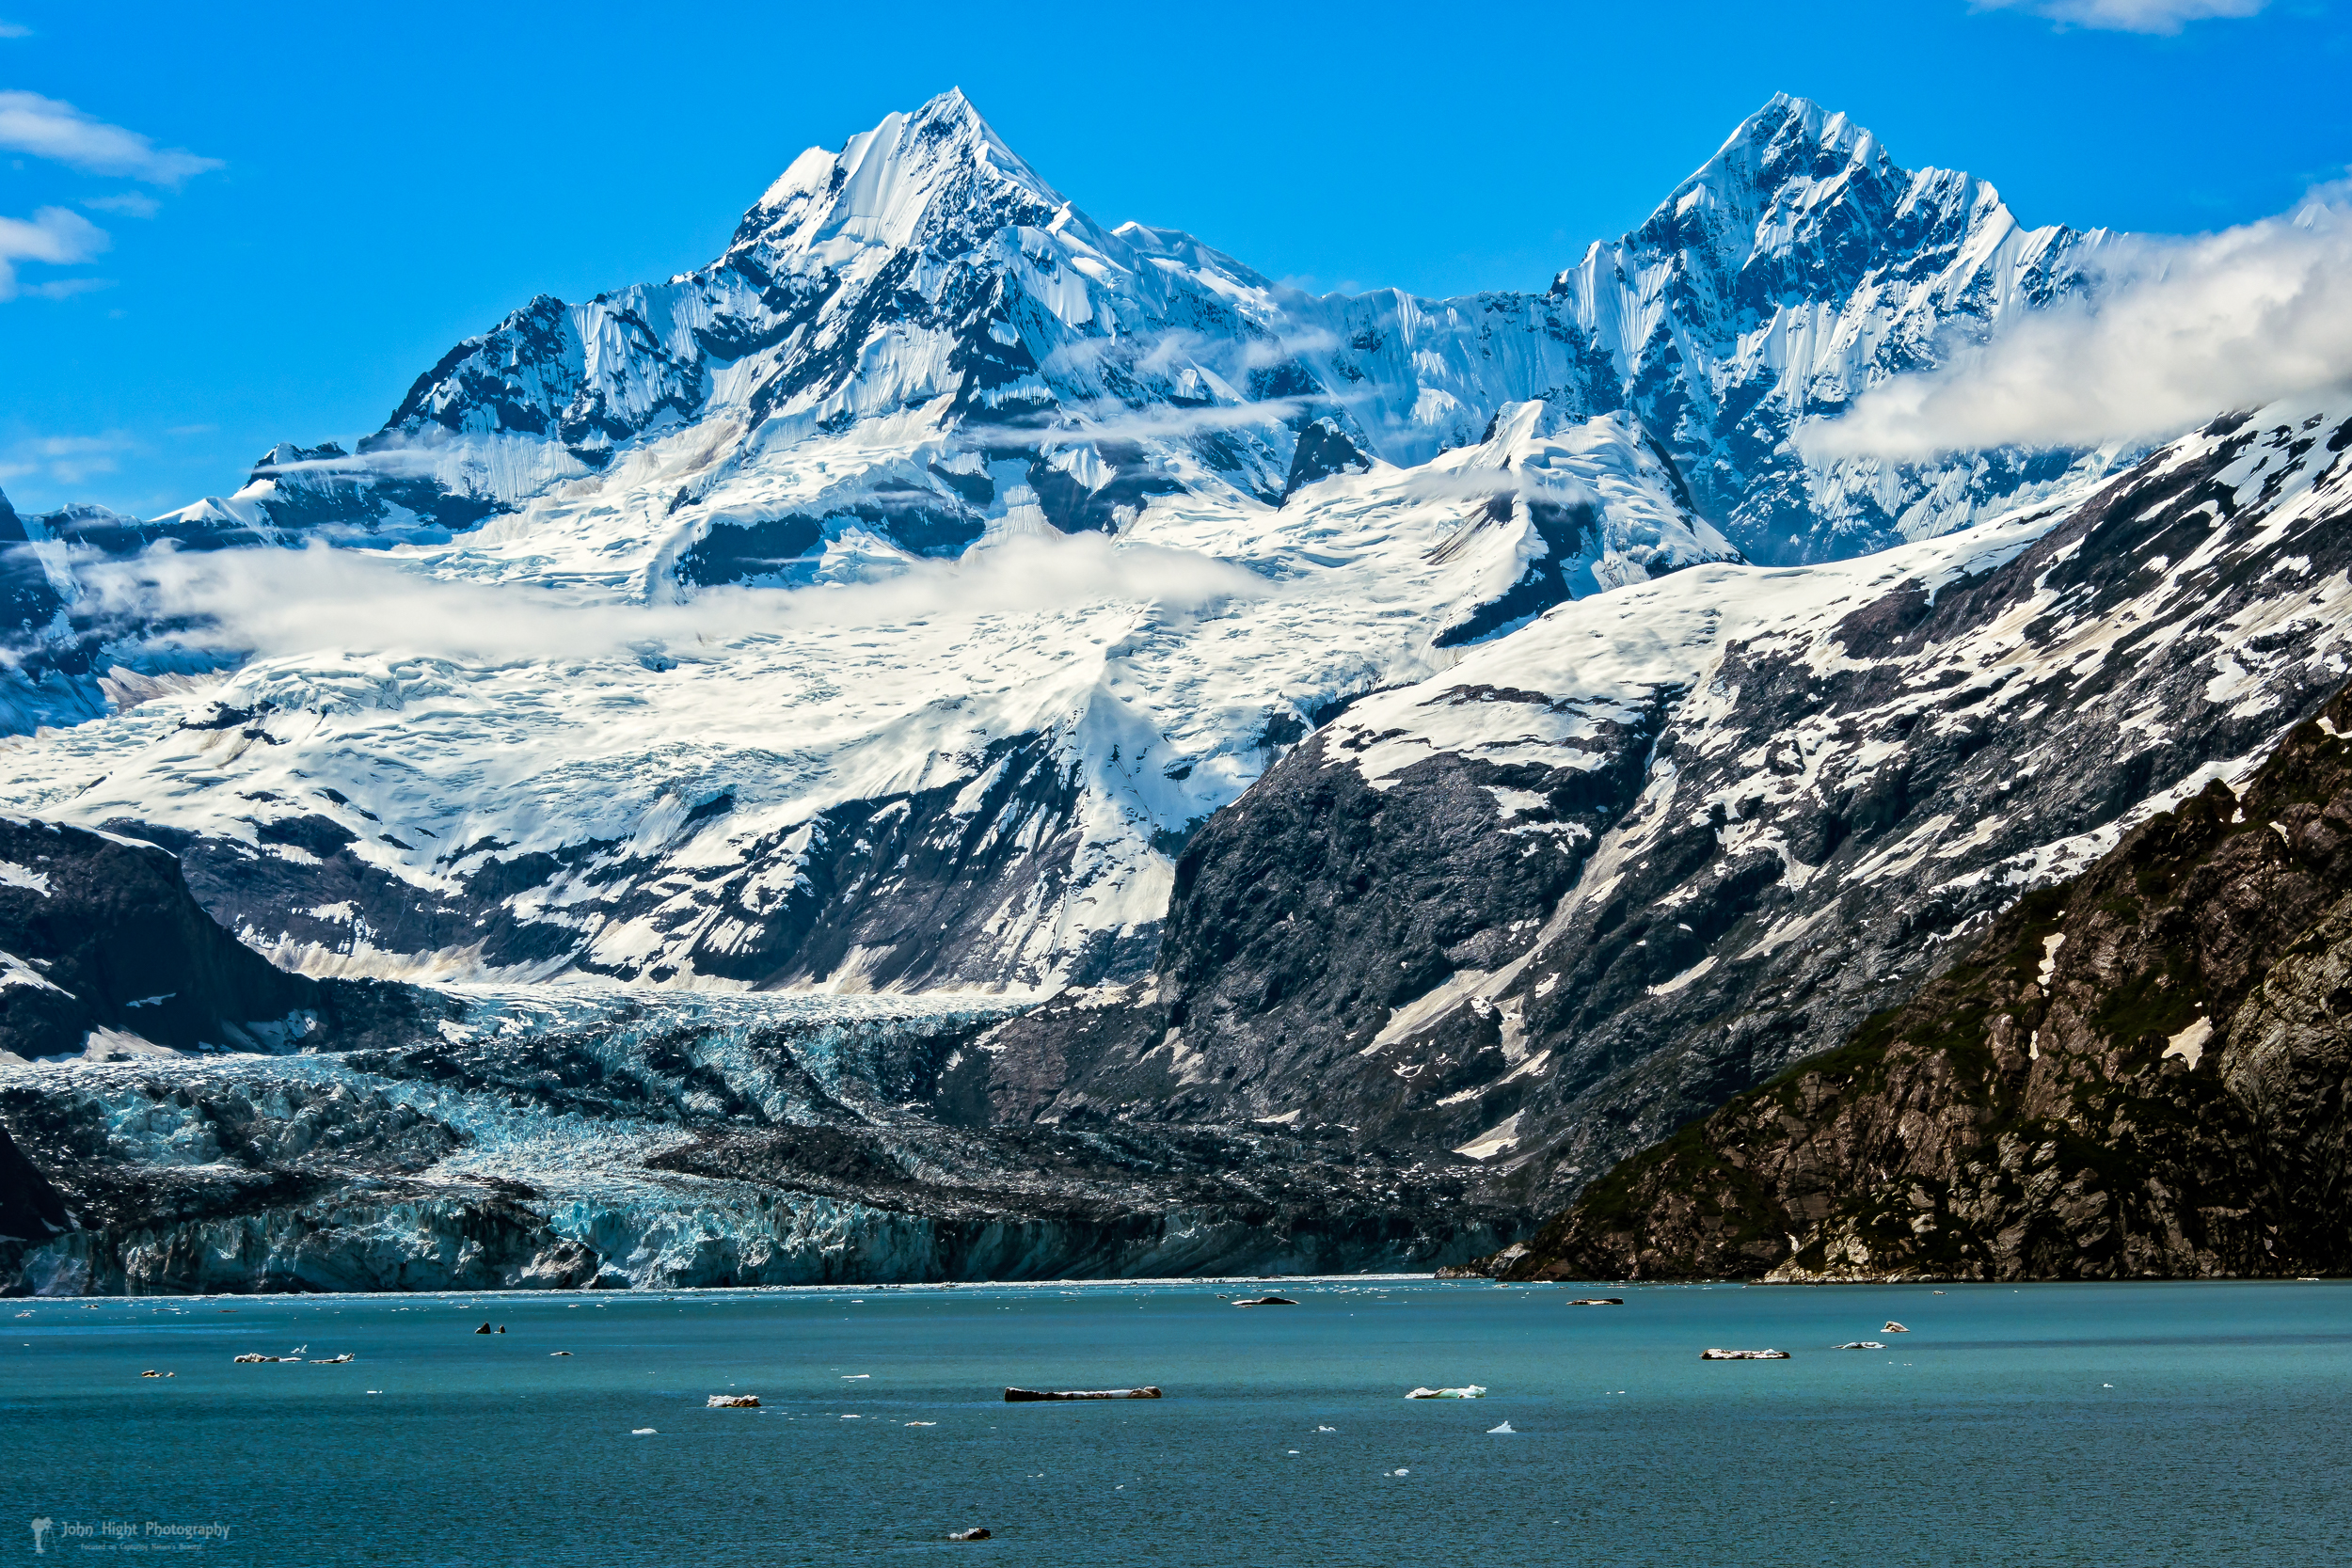 The John Hopkins Glacier